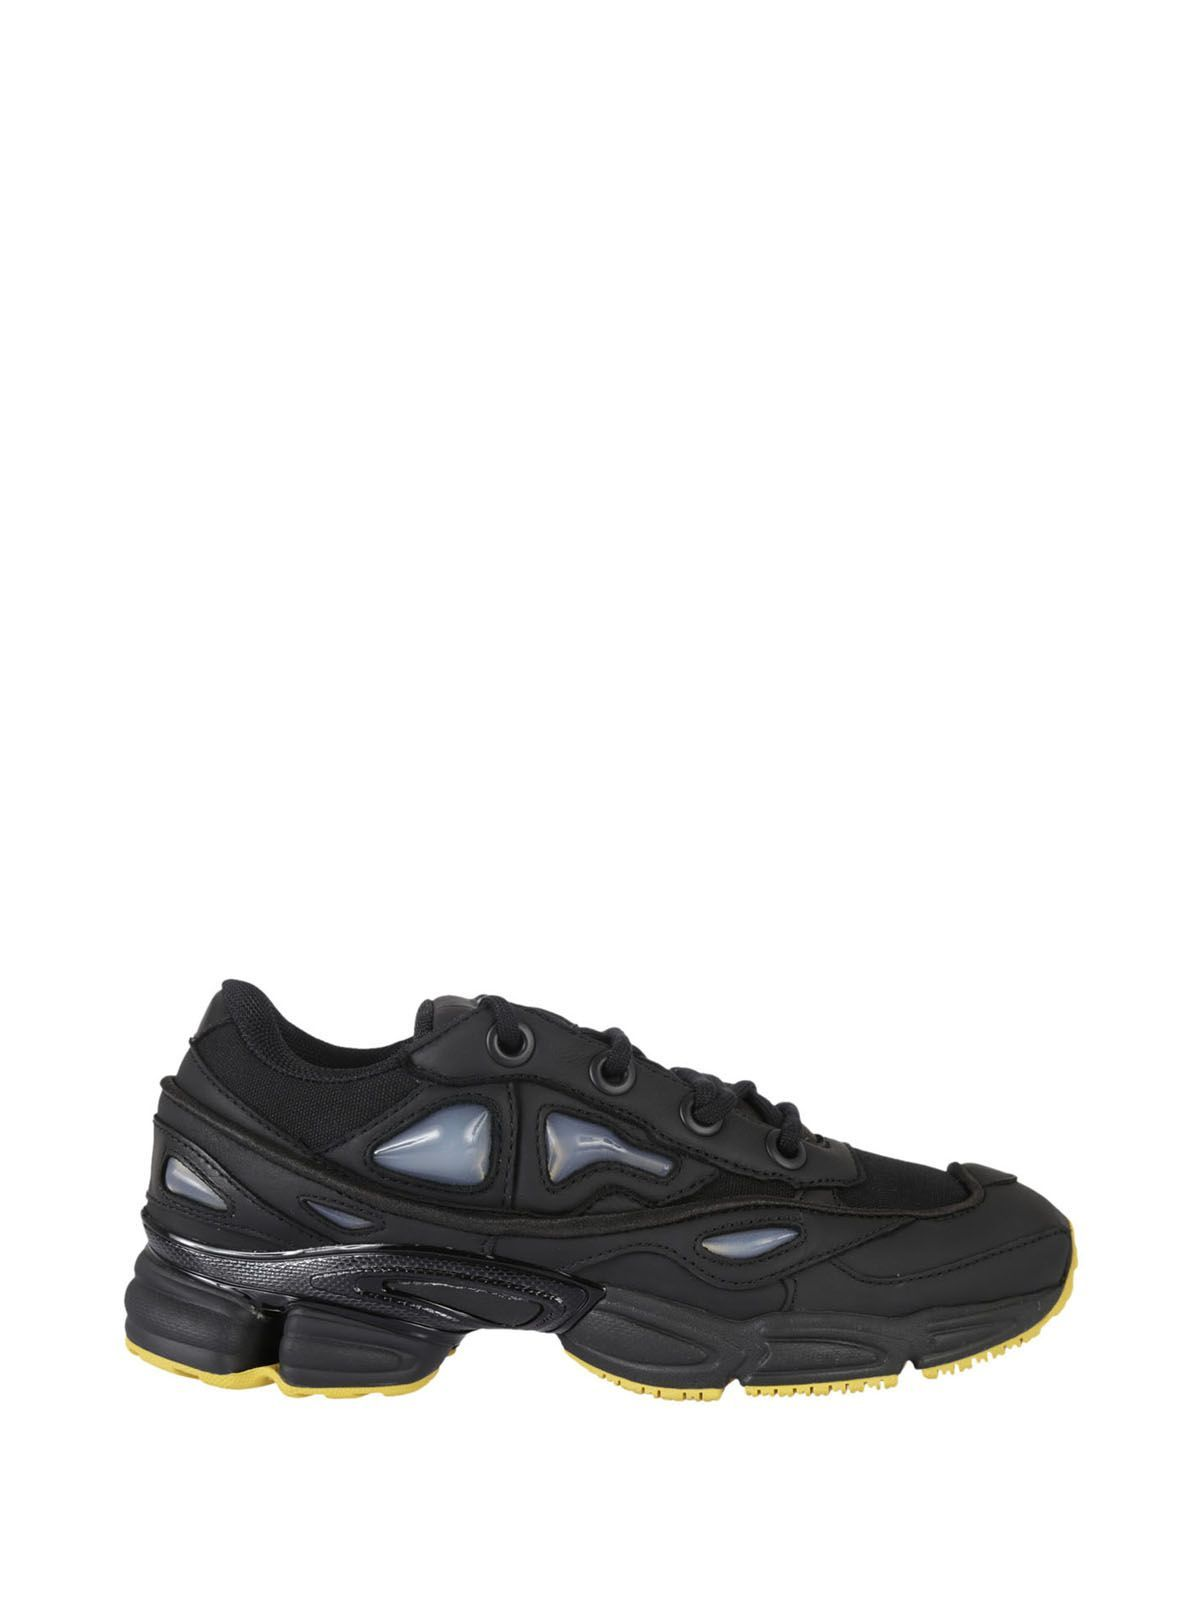 huge discount 7cdac db156 ADIDAS BY RAF SIMONS OZWEEGO III SNEAKERS.  adidasbyrafsimons  shoes